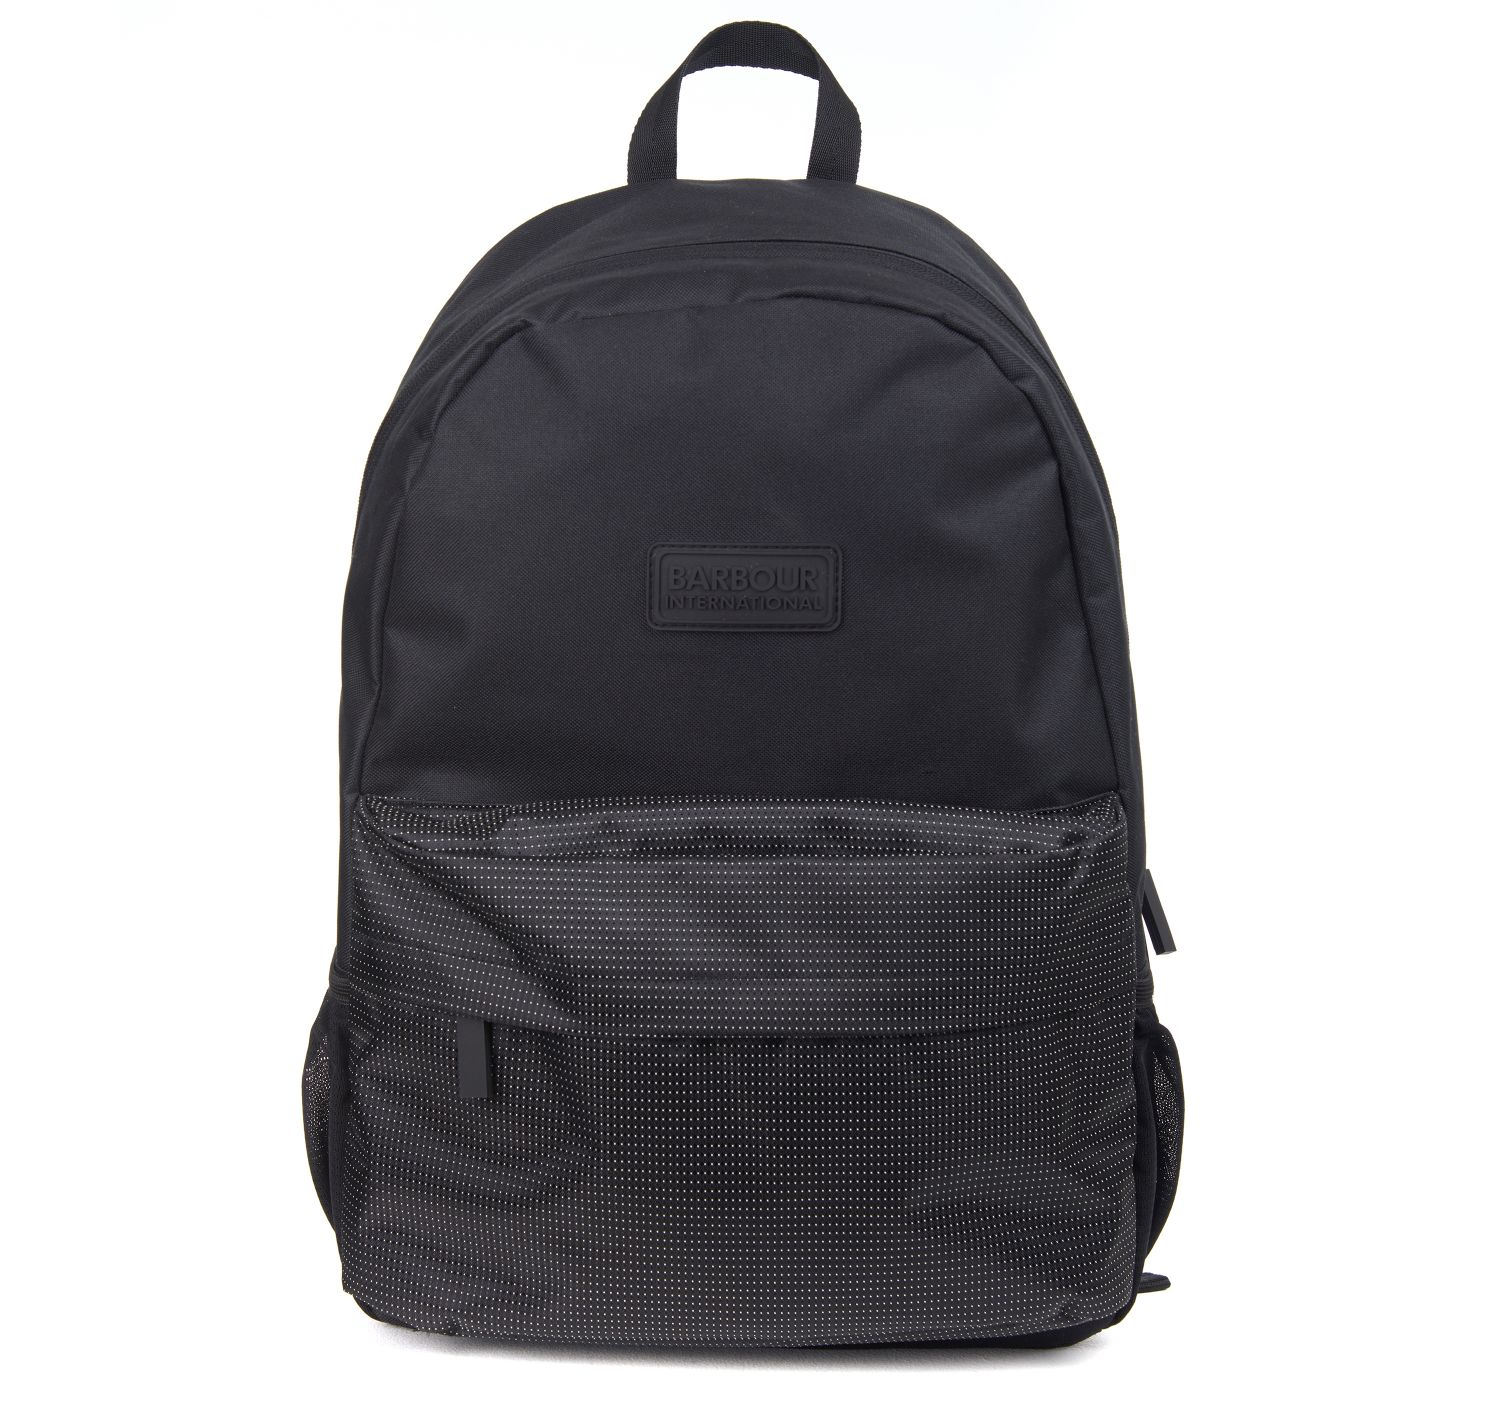 Barbour B.Intl Dock Backpack Black